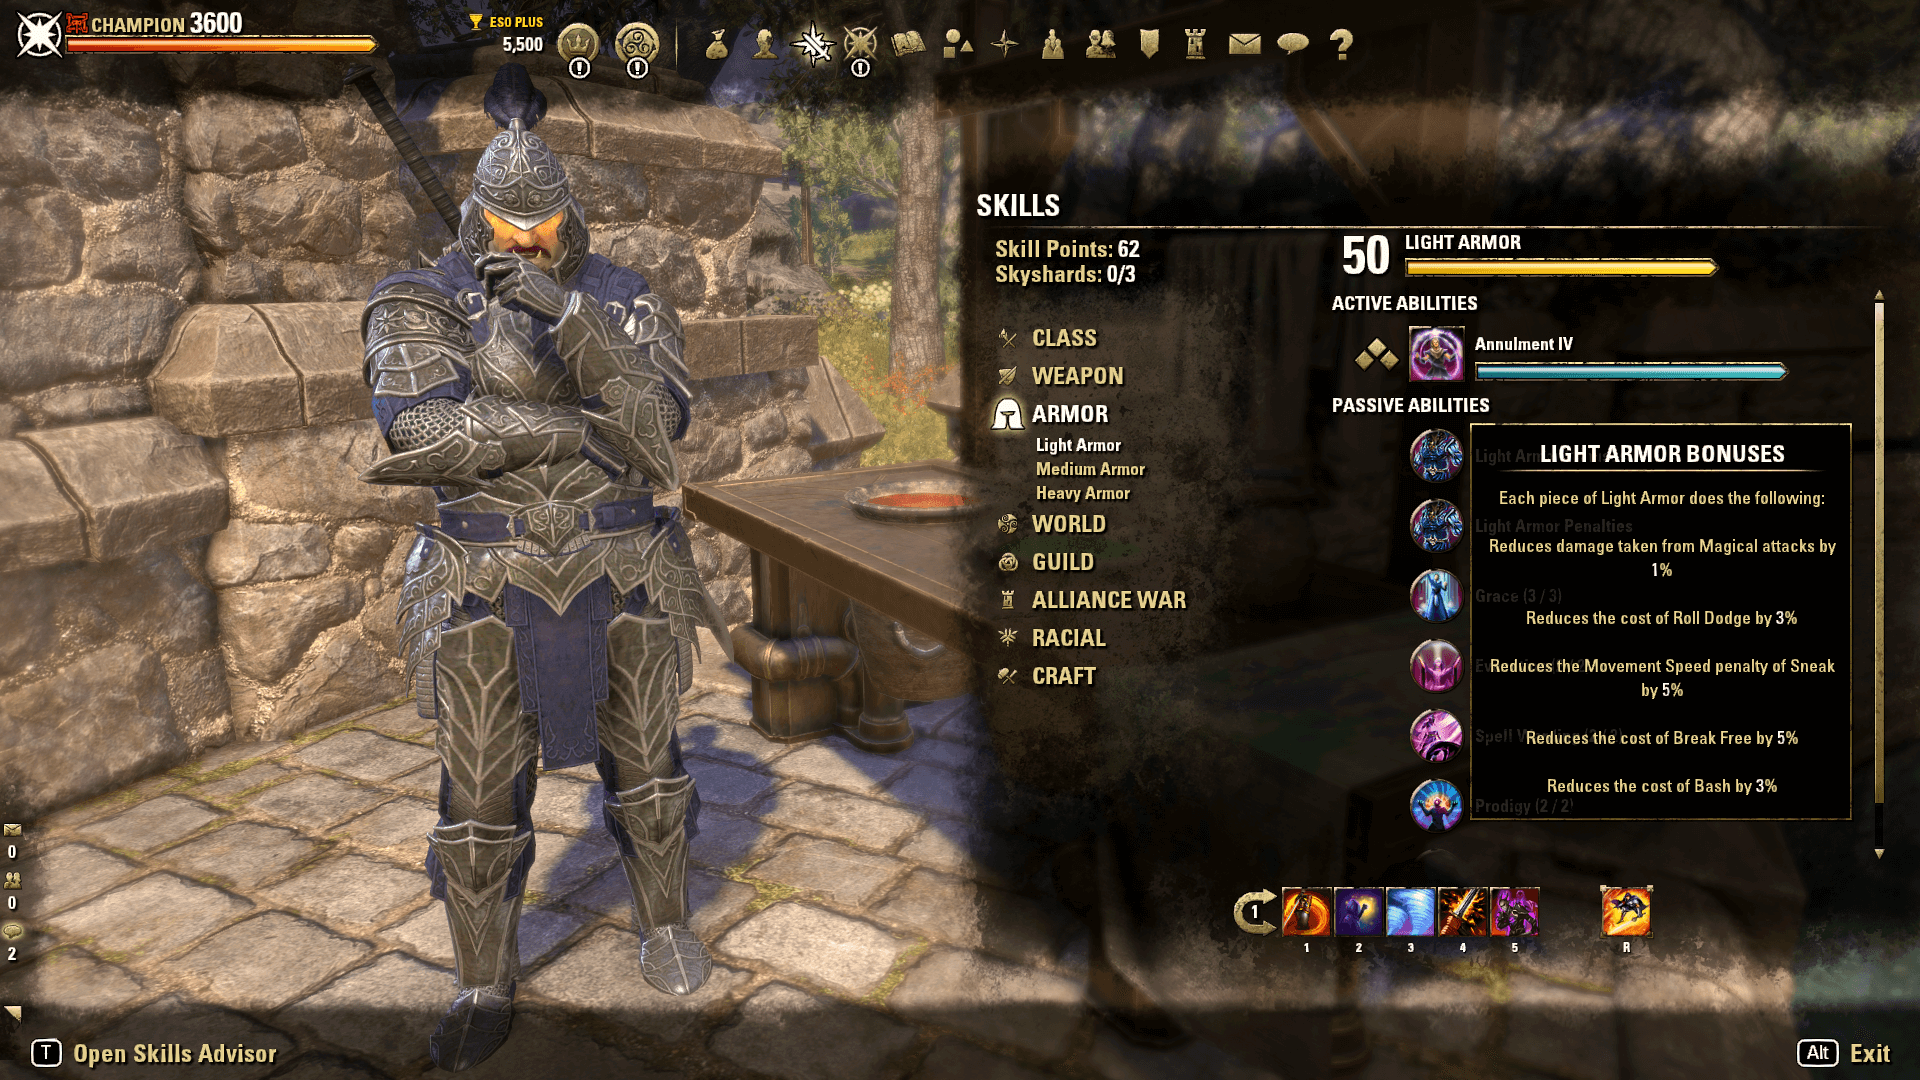 All Armor Types in ESO have Bonuses for each piece worn. Some armor types also have Penalties.